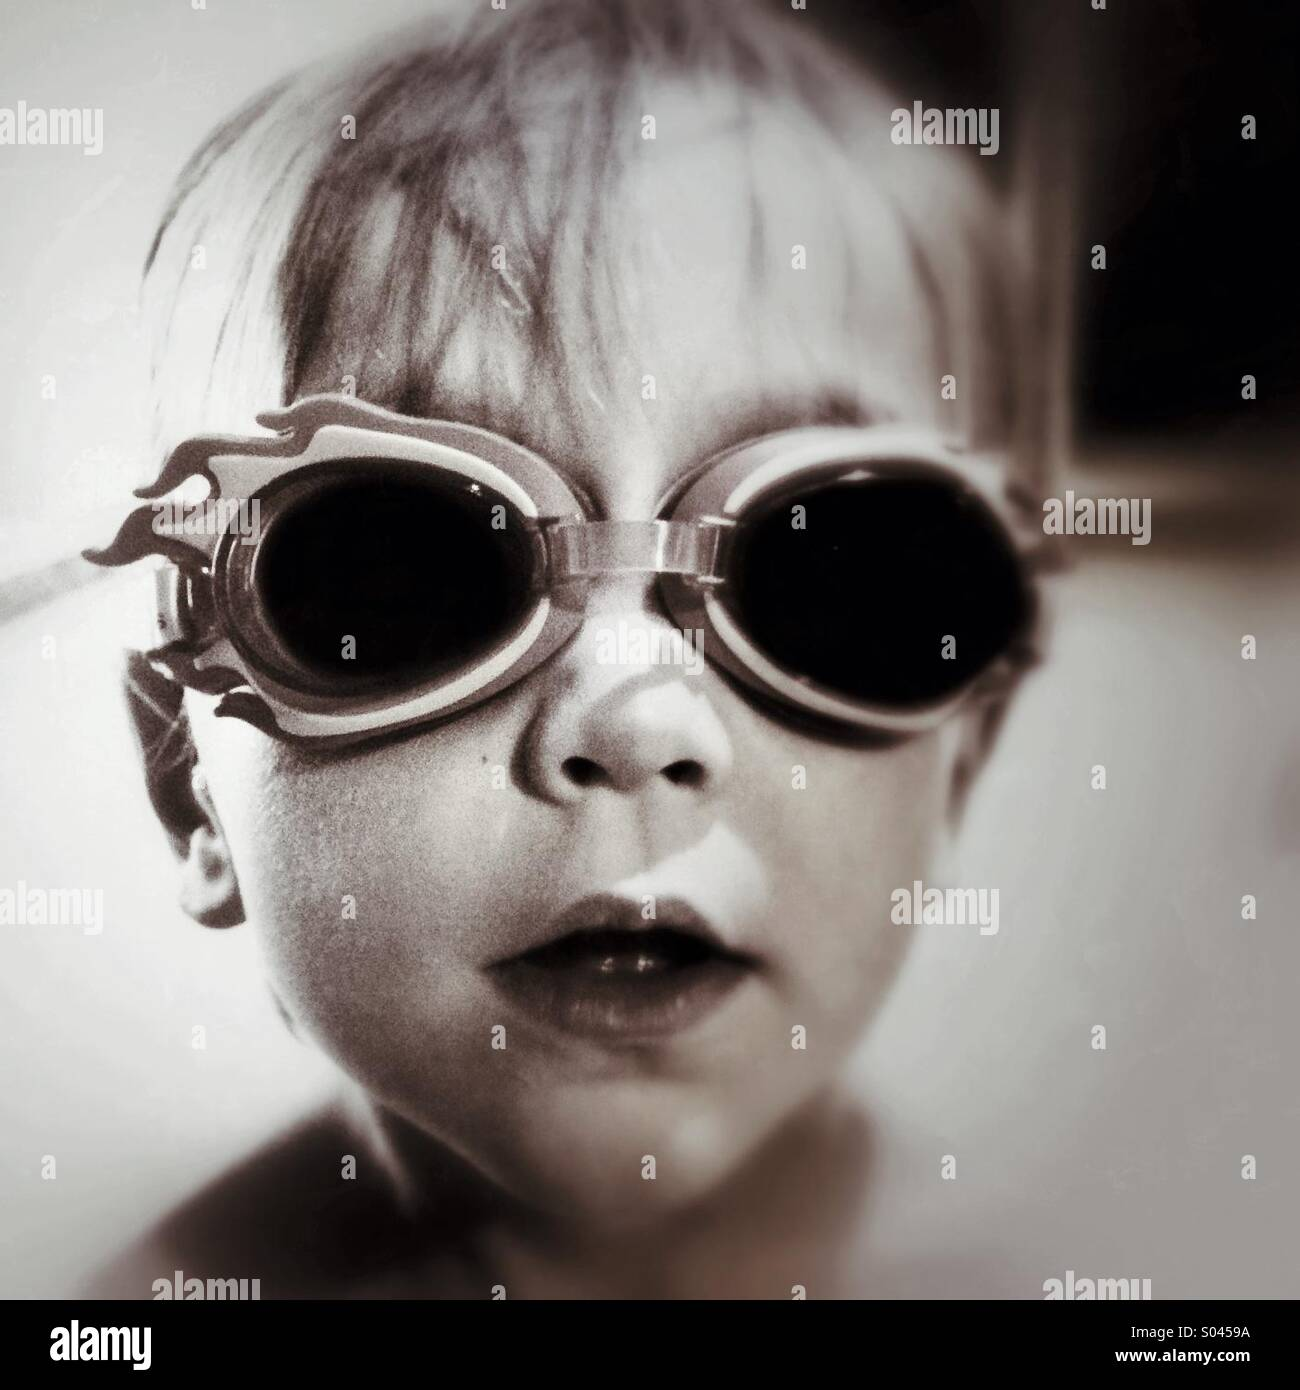 Boy wearing swimming goggles Stock Photo